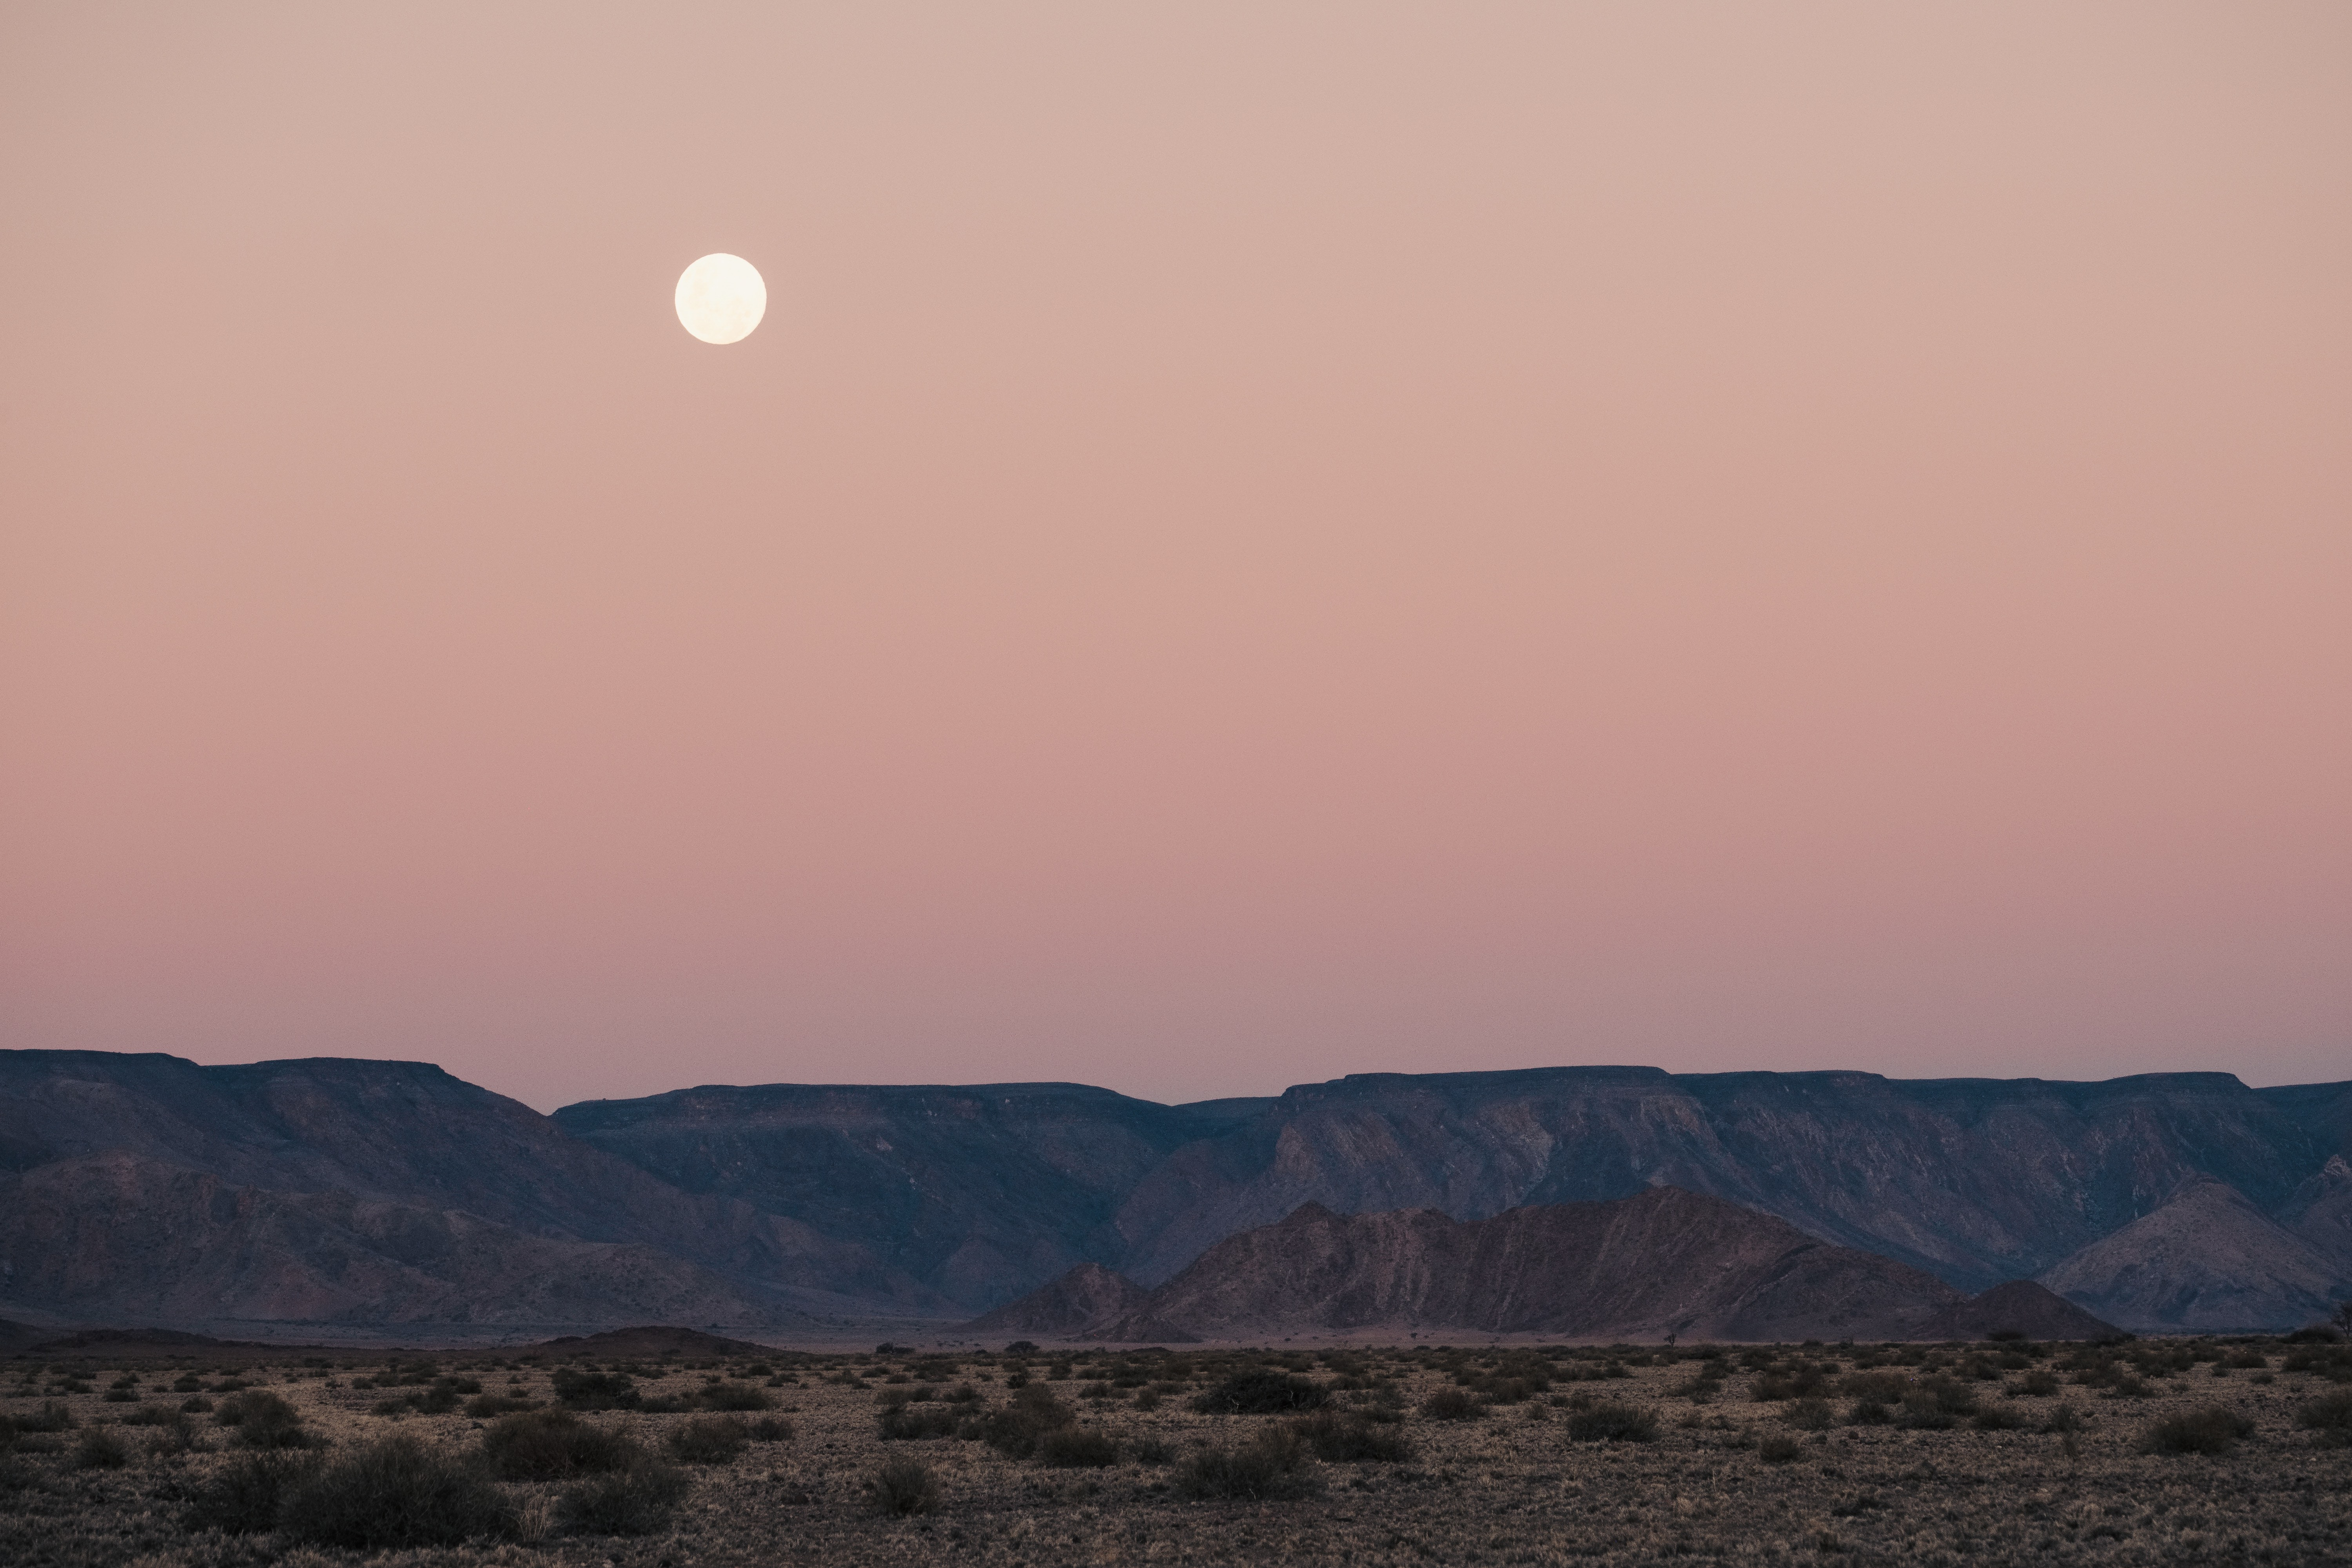 A full moon sighting on the Namib plains